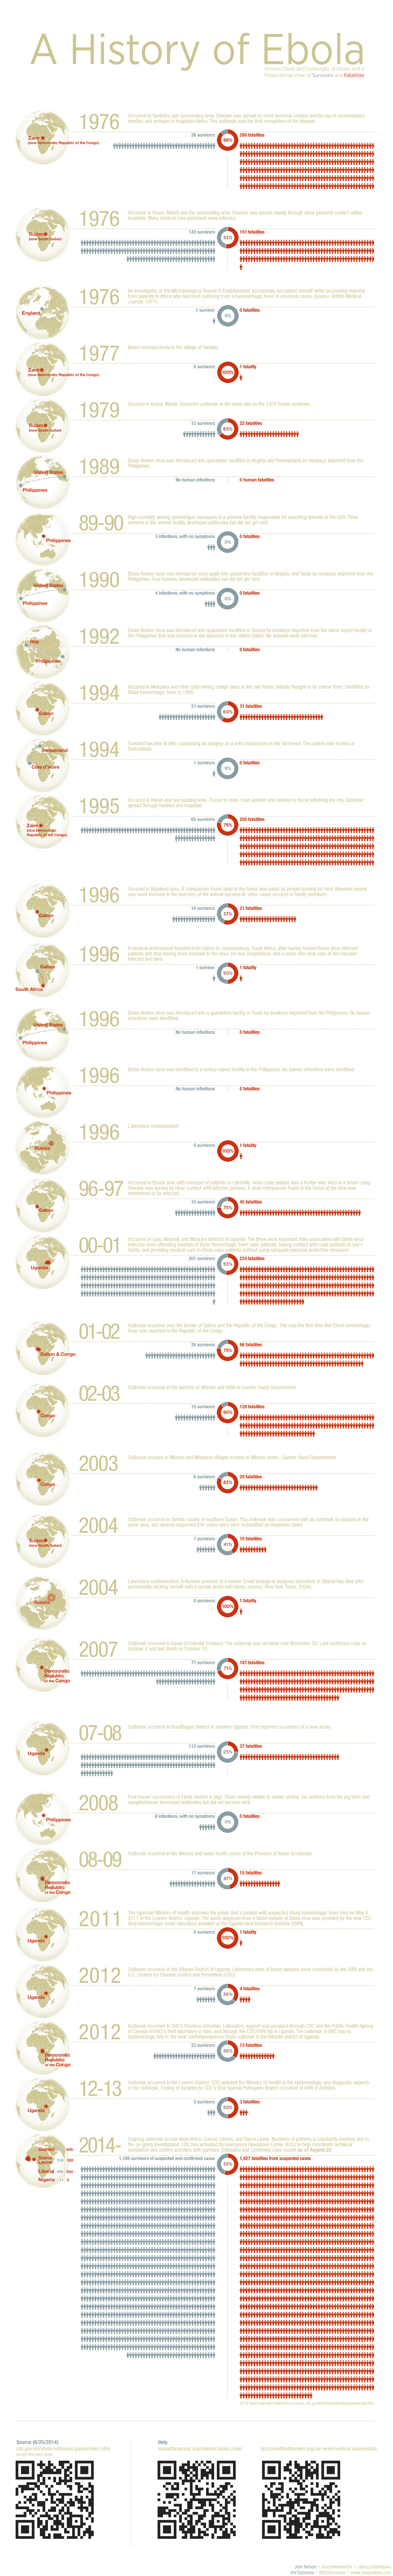 A History of Ebola Infographic